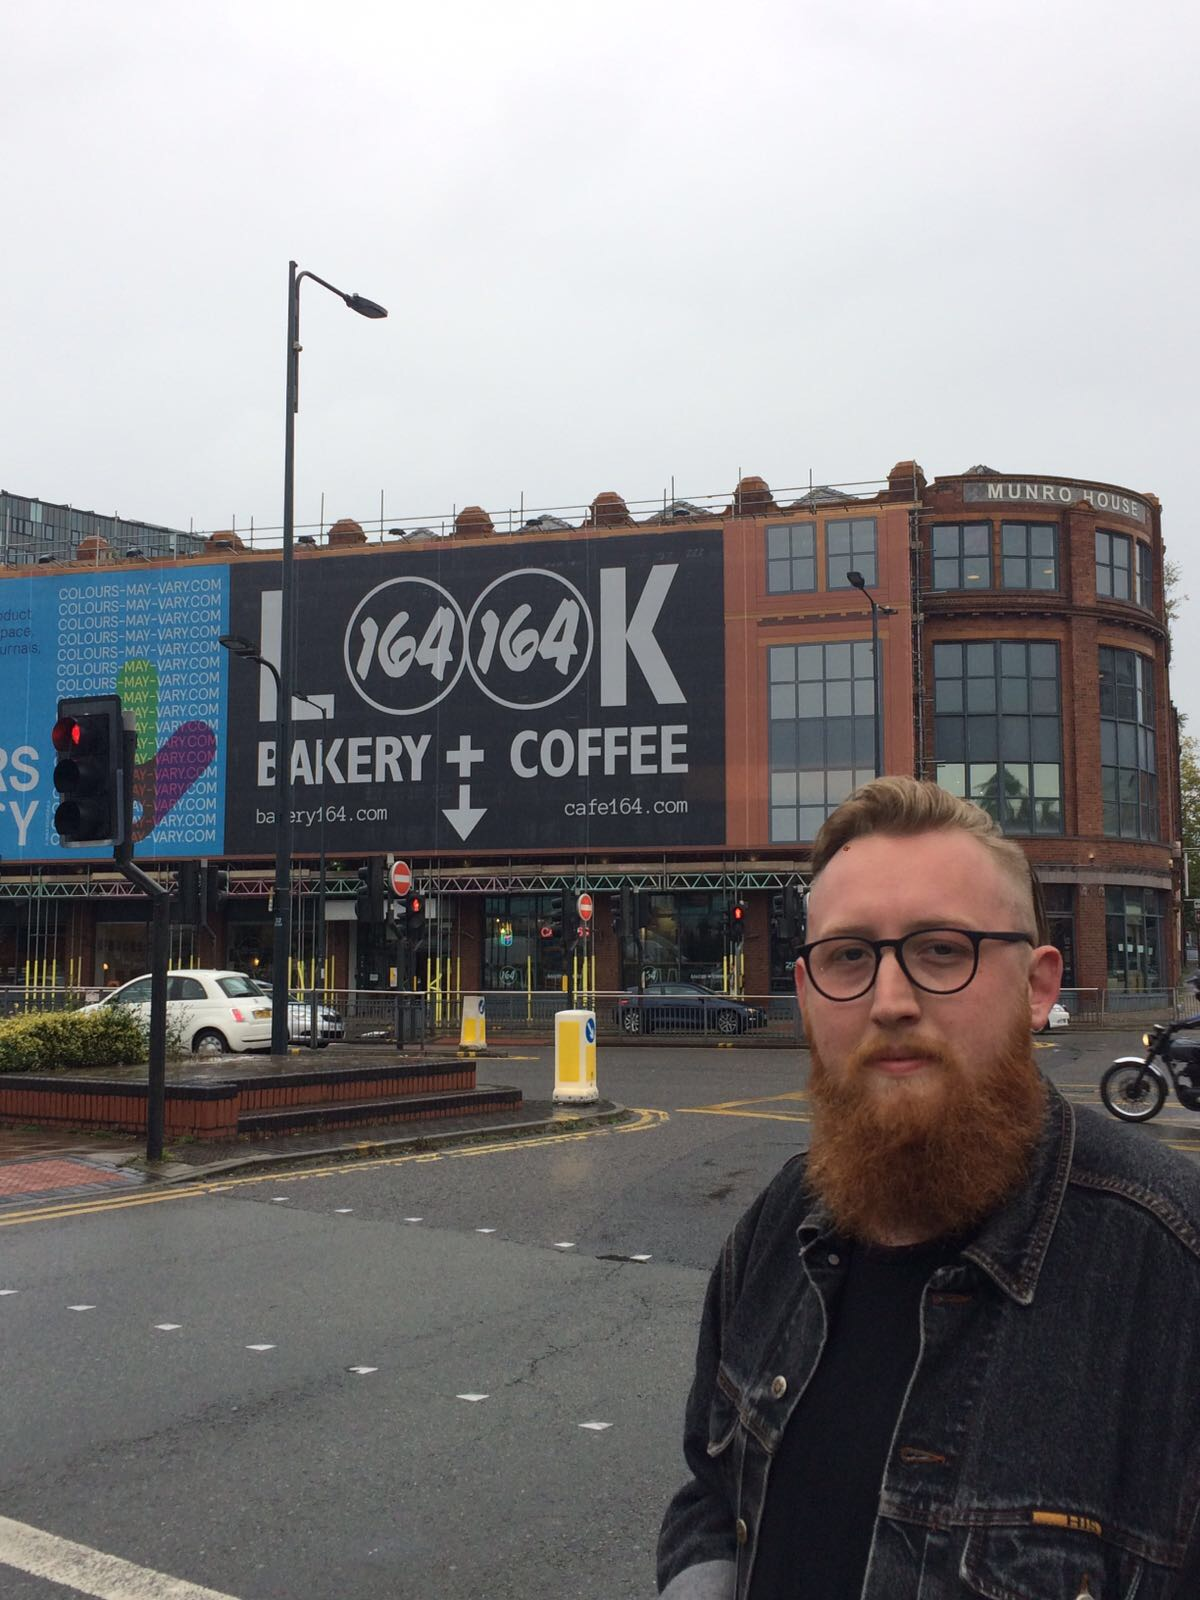 Krrum's photo guide to Leeds